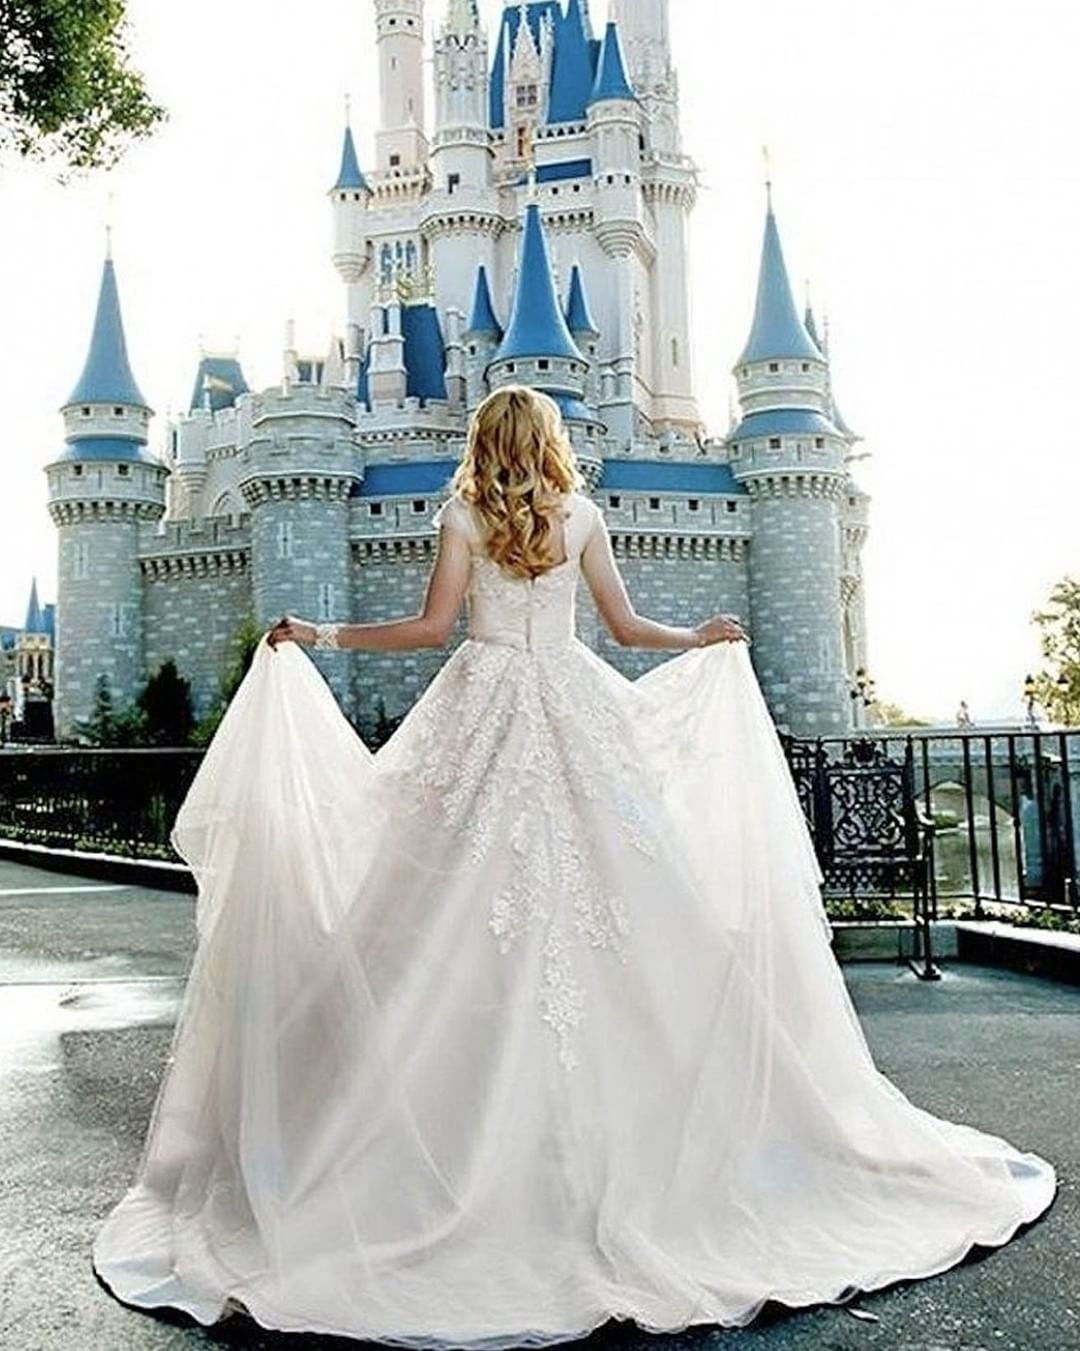 Gorgeous This Totally Made Our Day Double Tap If This Could Be Your Dream Dress Fairy Tale Wedding Dress Disney World Wedding Disney Fairy Tale Weddings [ 1351 x 1080 Pixel ]